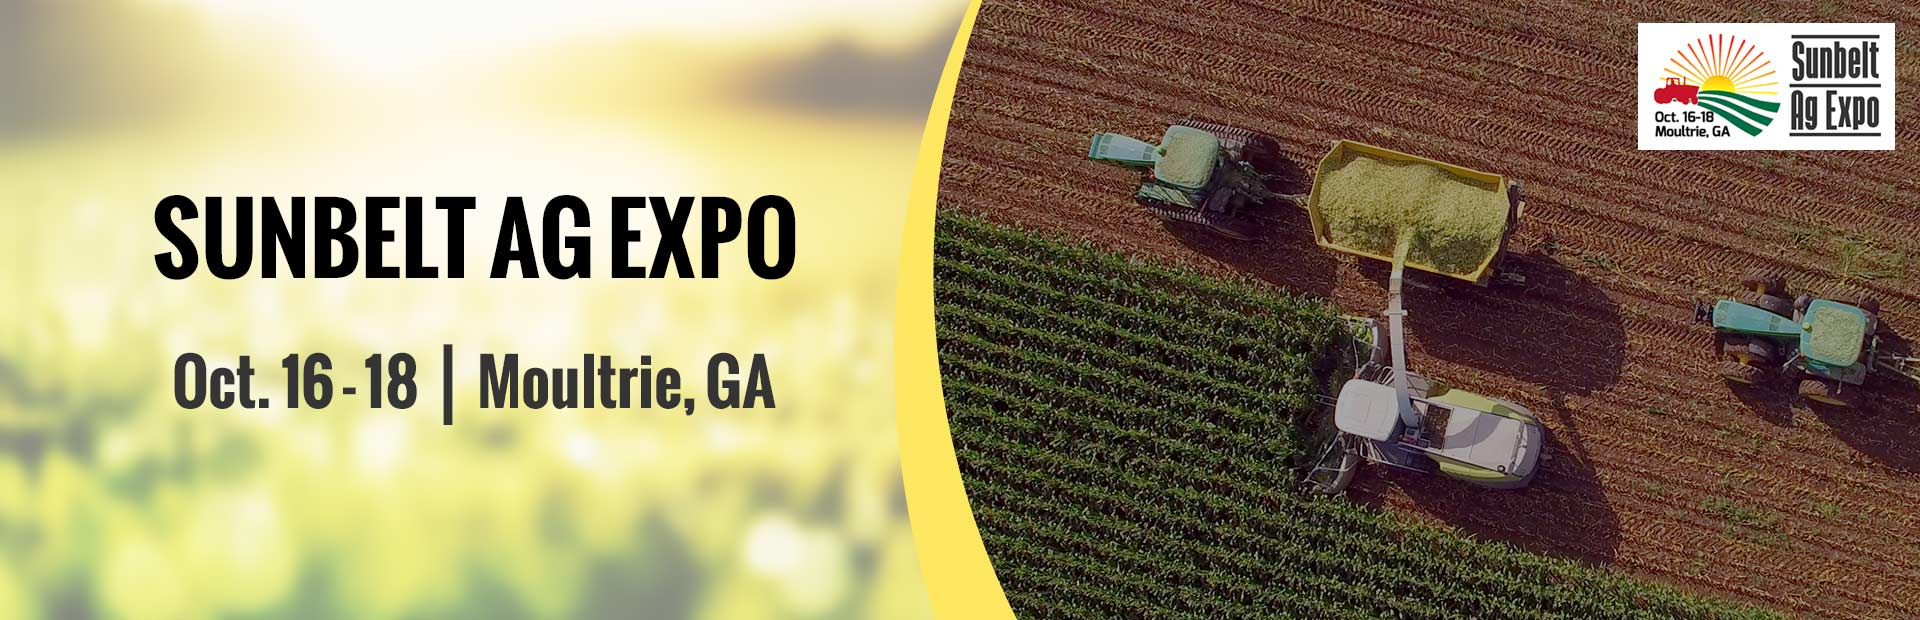 Join us October 16 - 18 for the Sunbelt Ag Expo!